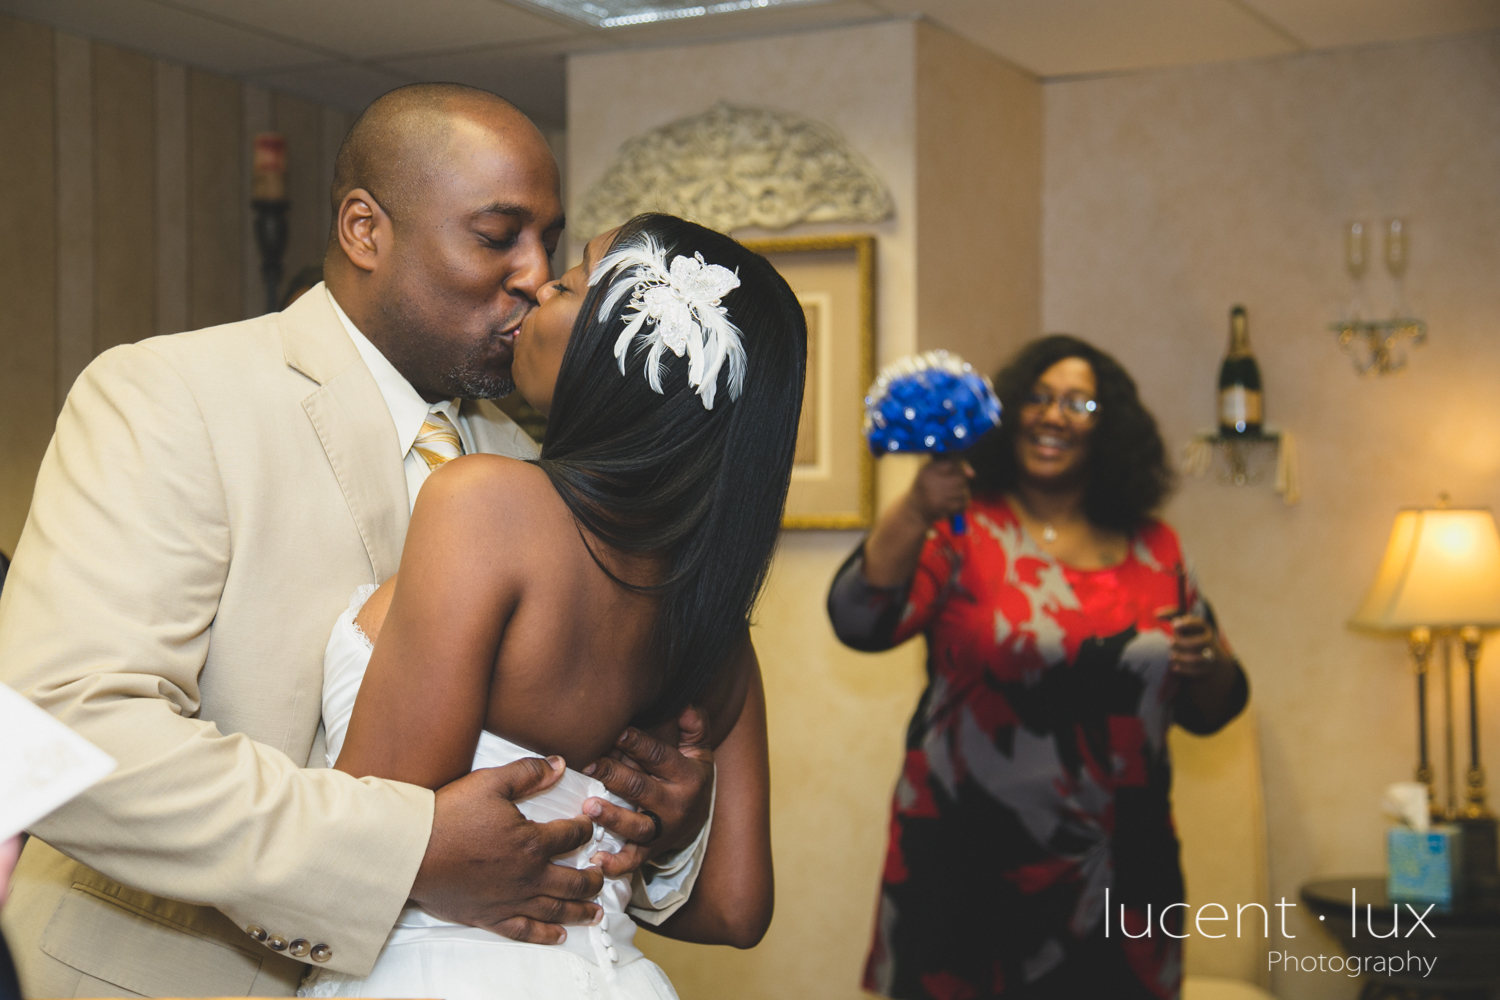 Harford_County_Courthouse_Bel_Air_Maryland_Wedding_Photographer_Maryland_Wedding_Photography-137.jpg